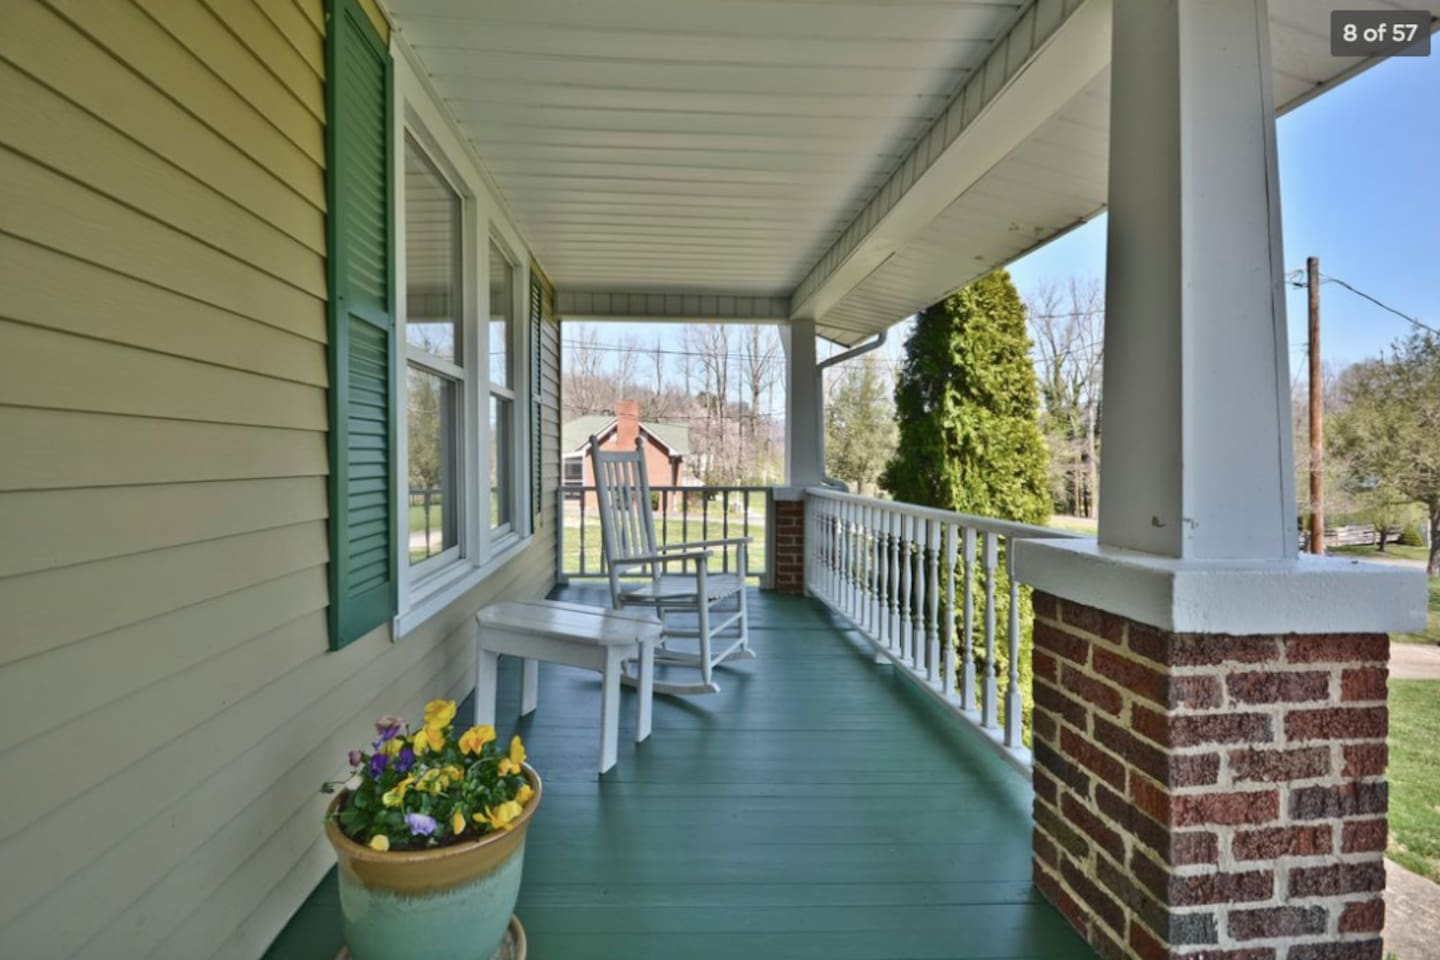 A wide front porch with rockers offers a scenic view down to the creek, while a screened-in porch with table and chairs for al fresco dining offers privacy for a glass of wine in the evening. Also, a firepit is available for toasting marshmallows.